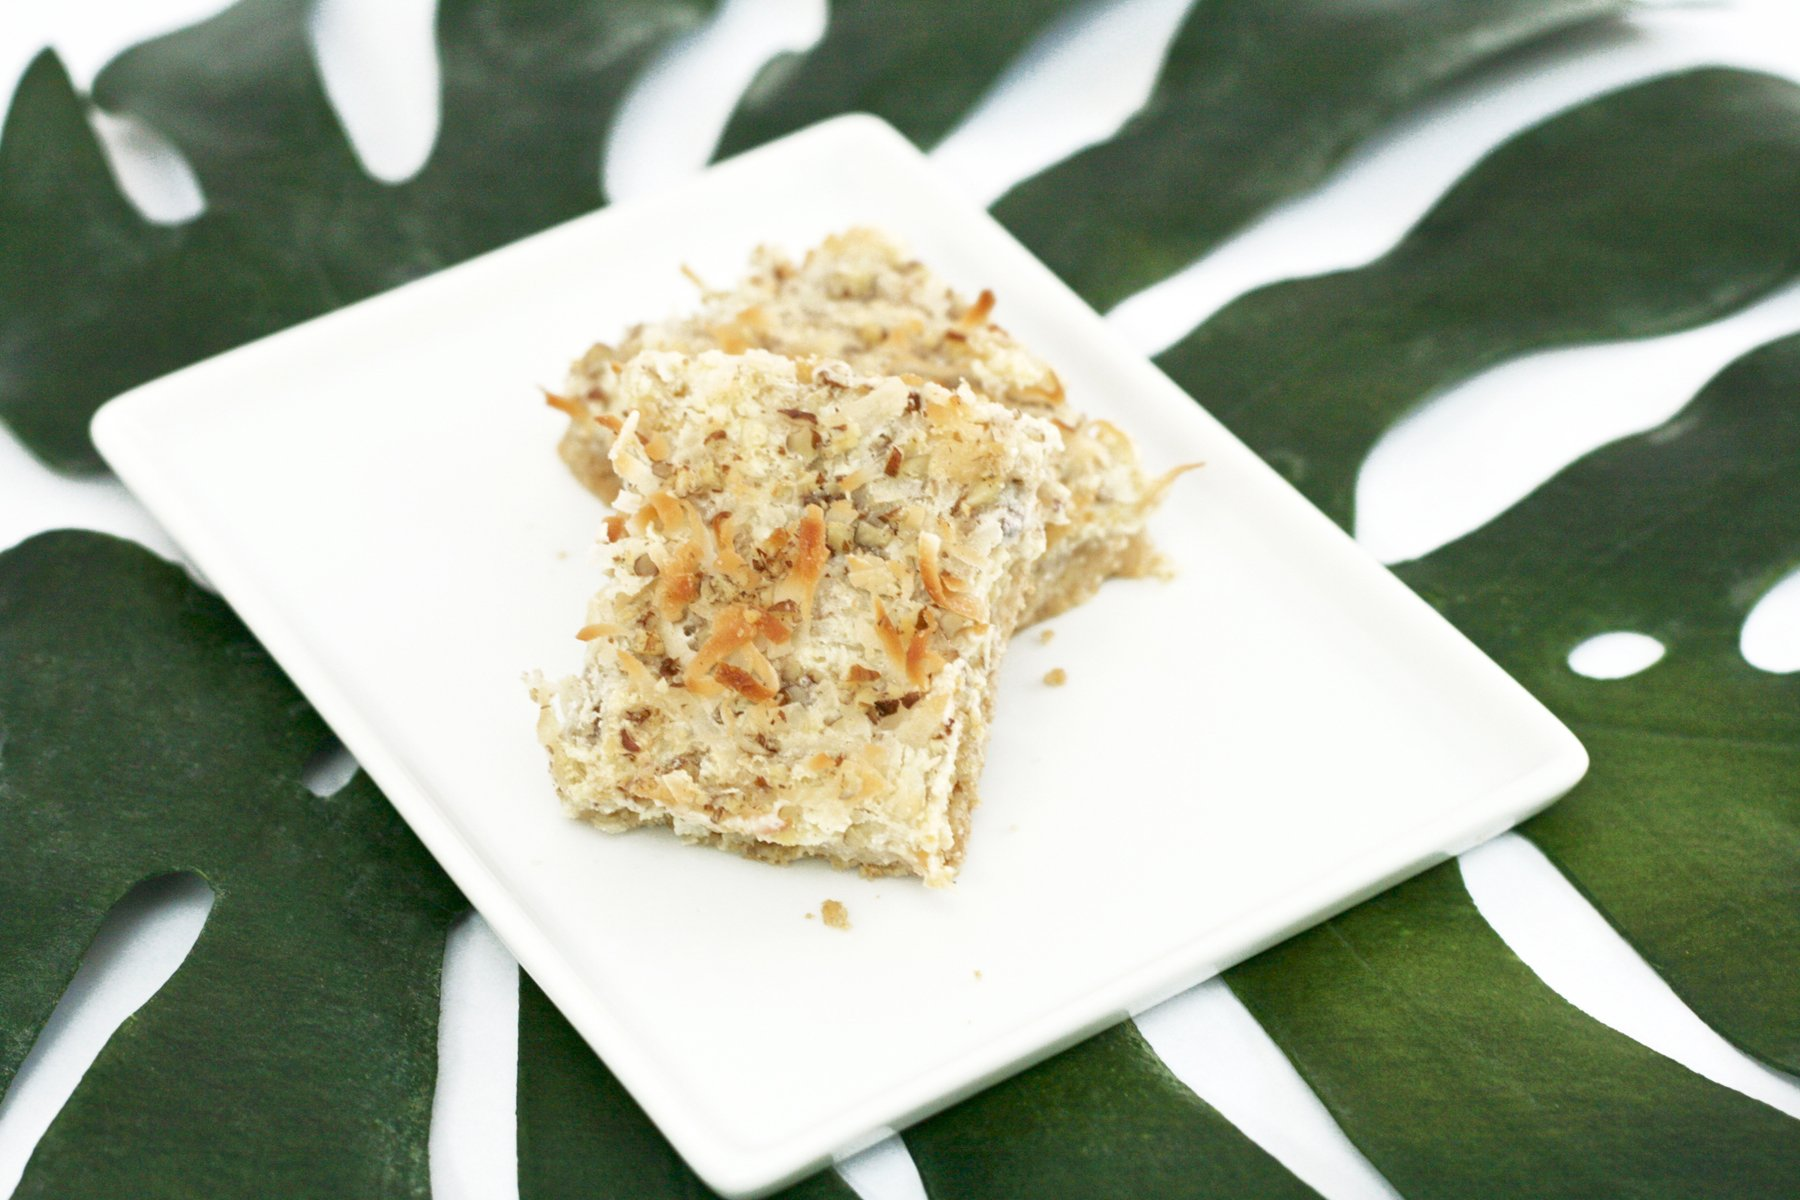 Moana Party Food Ideas: Coconut Kakamora Treat Bars. Recipe via @PagingSupermom